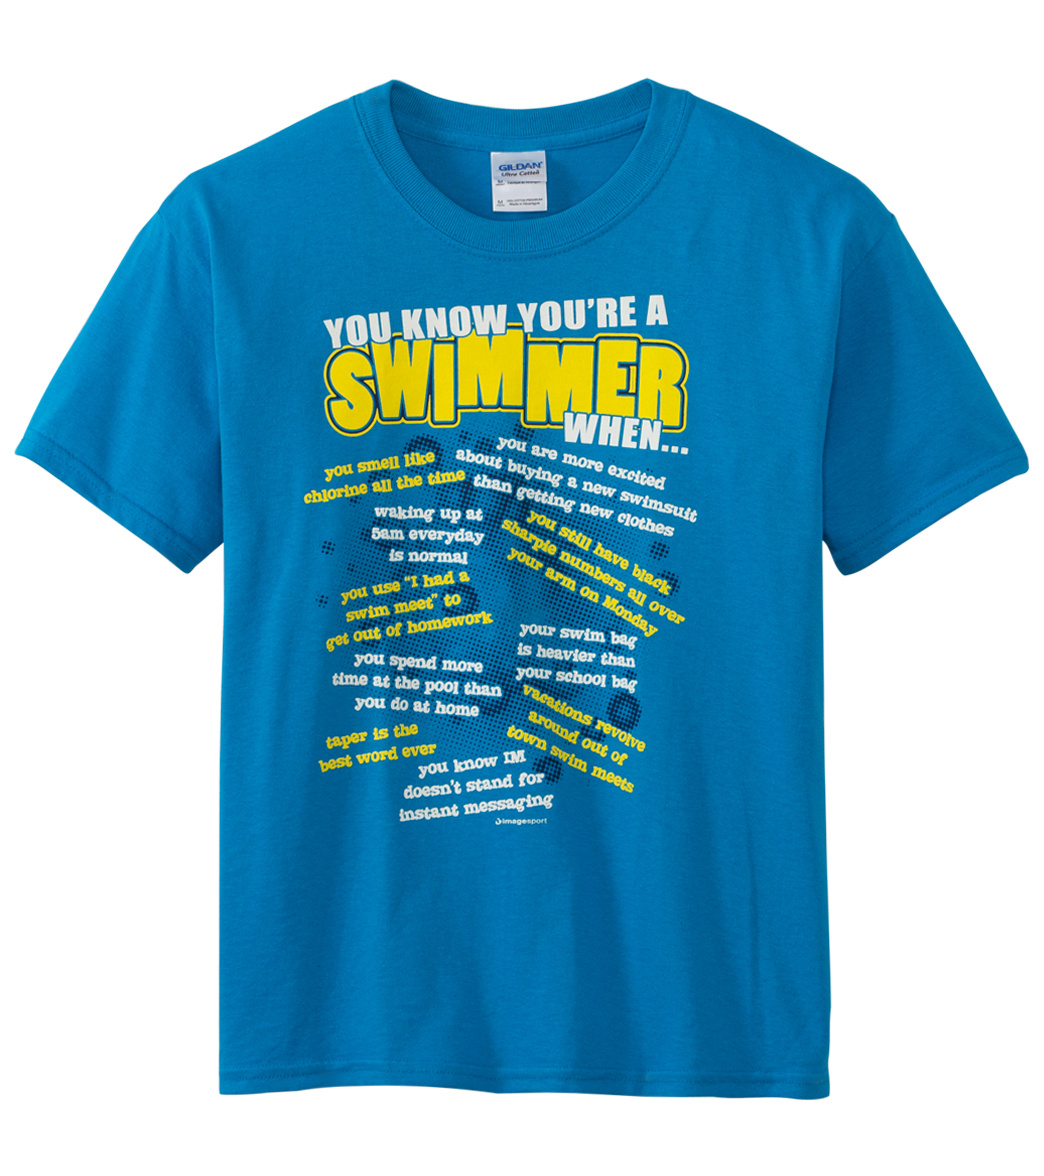 ac666c75 Image Sport Youth 'You Know You're a Swimmer When' -Blue T-Shirt ...